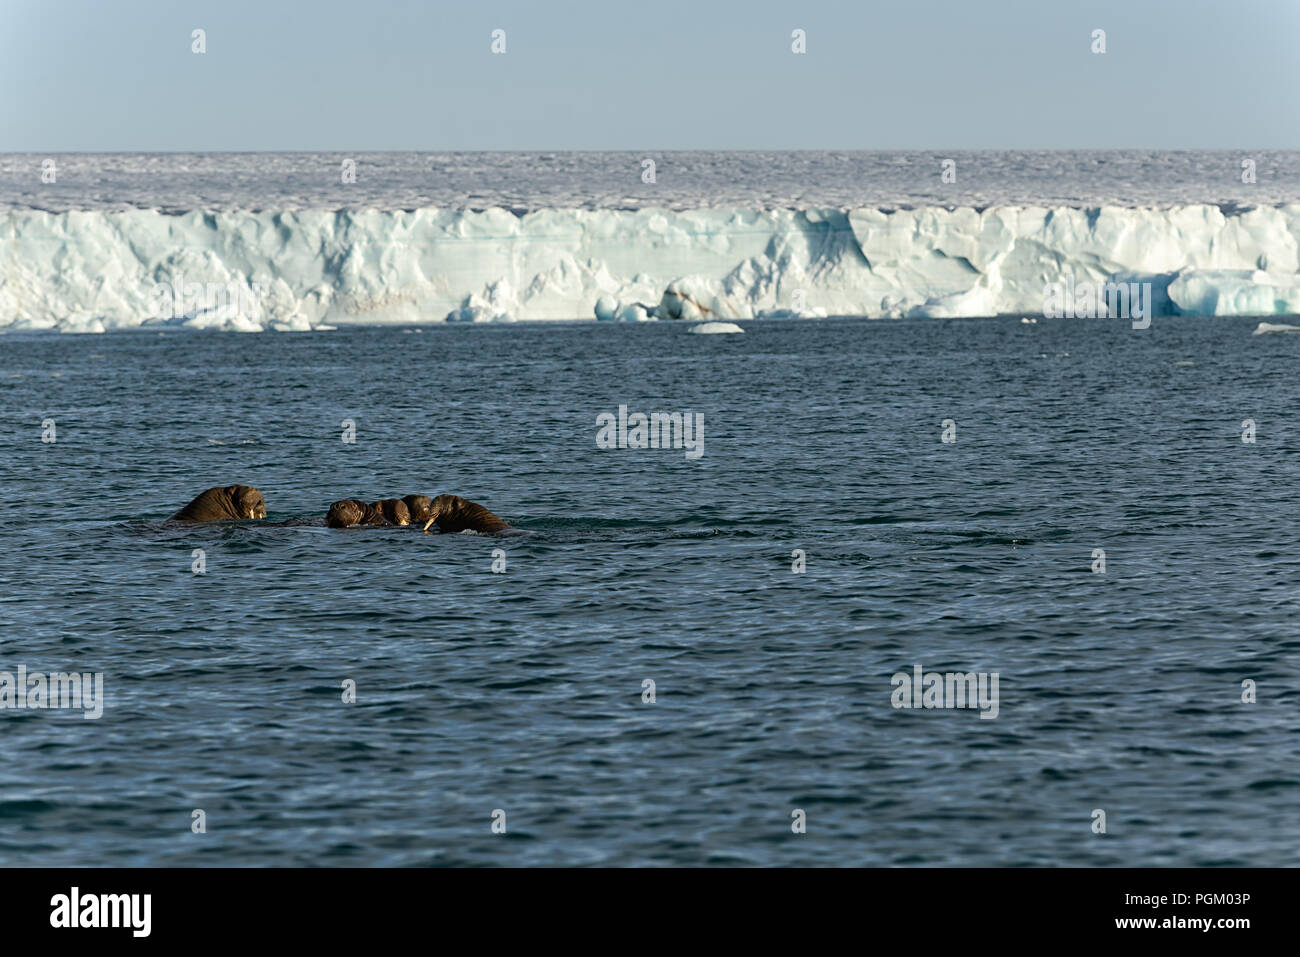 Group of walruses swimming in sea in front of Bråsvellbreen, Austfonna, Nordaustlandet, Svalbard Archipelago, Norway Stock Photo